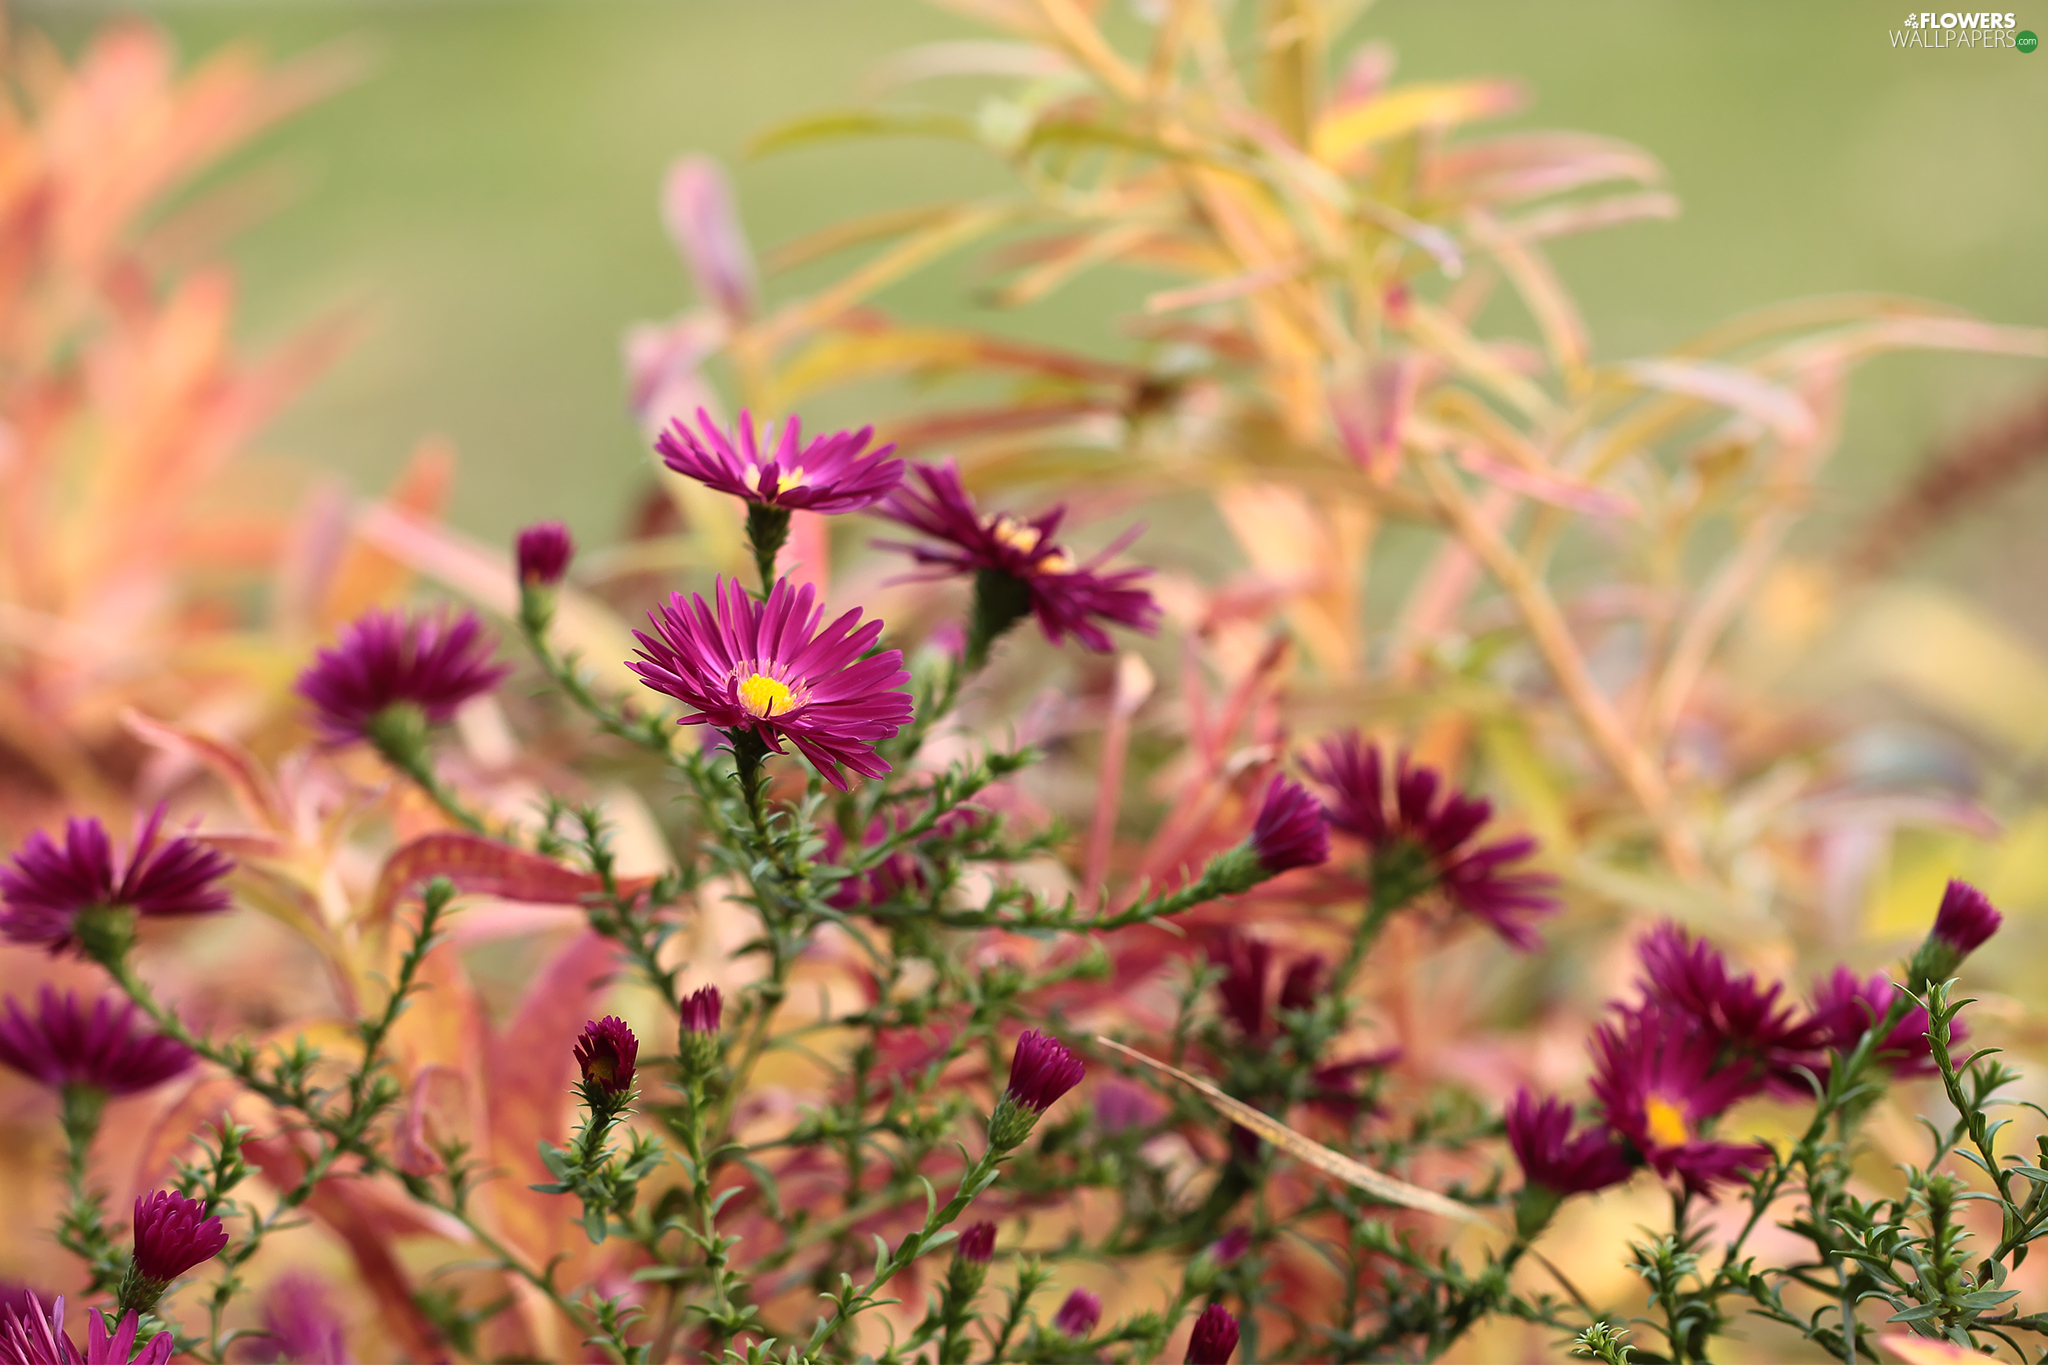 Aster, claret, Flowers, Beetle